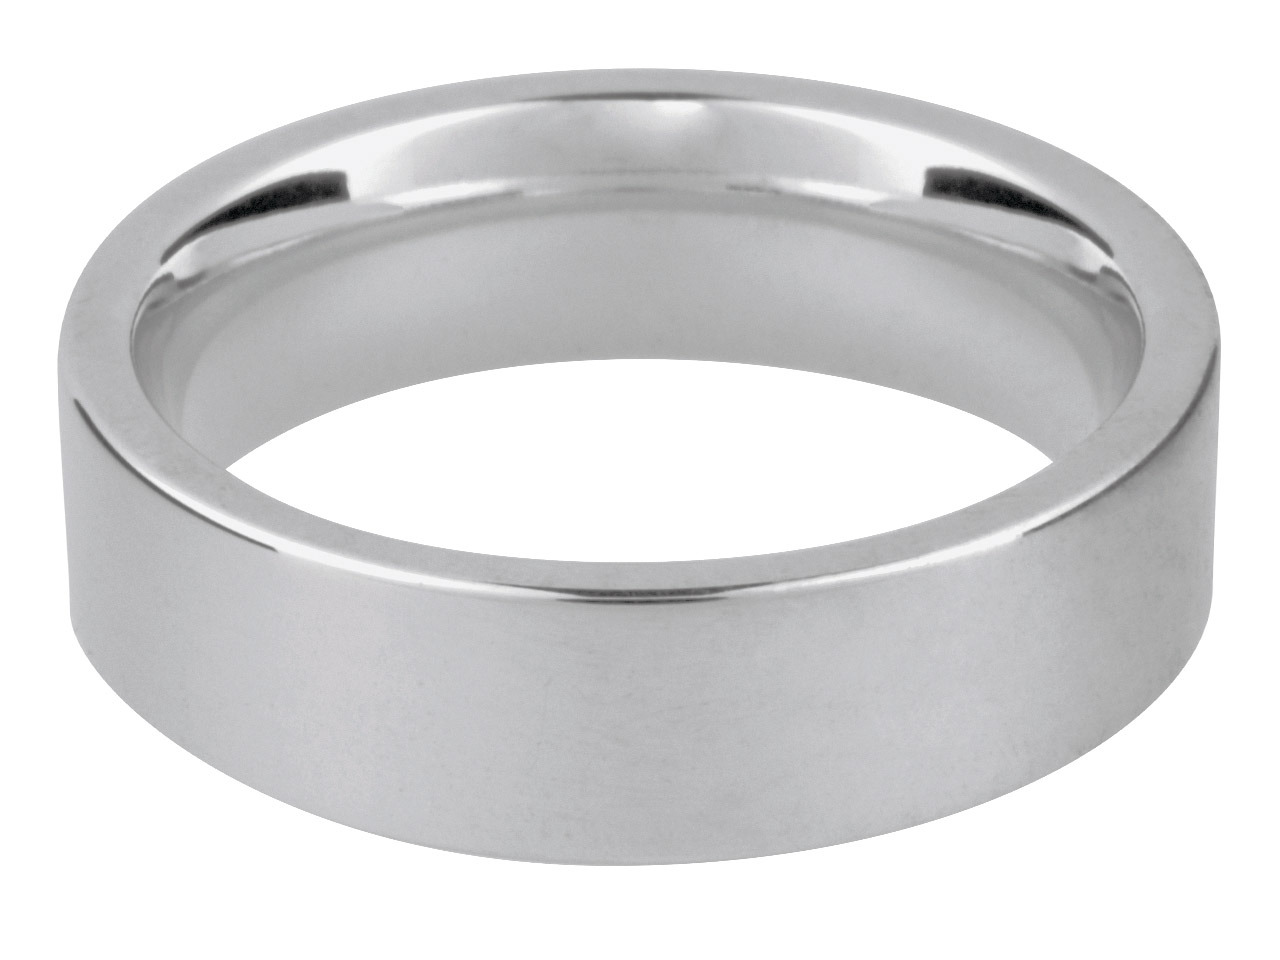 9ct White Easy Fit Wedding Ring    4.0mm V 5.2gms Medium Weight       Hallmarked Wall Thickness 1.63mm